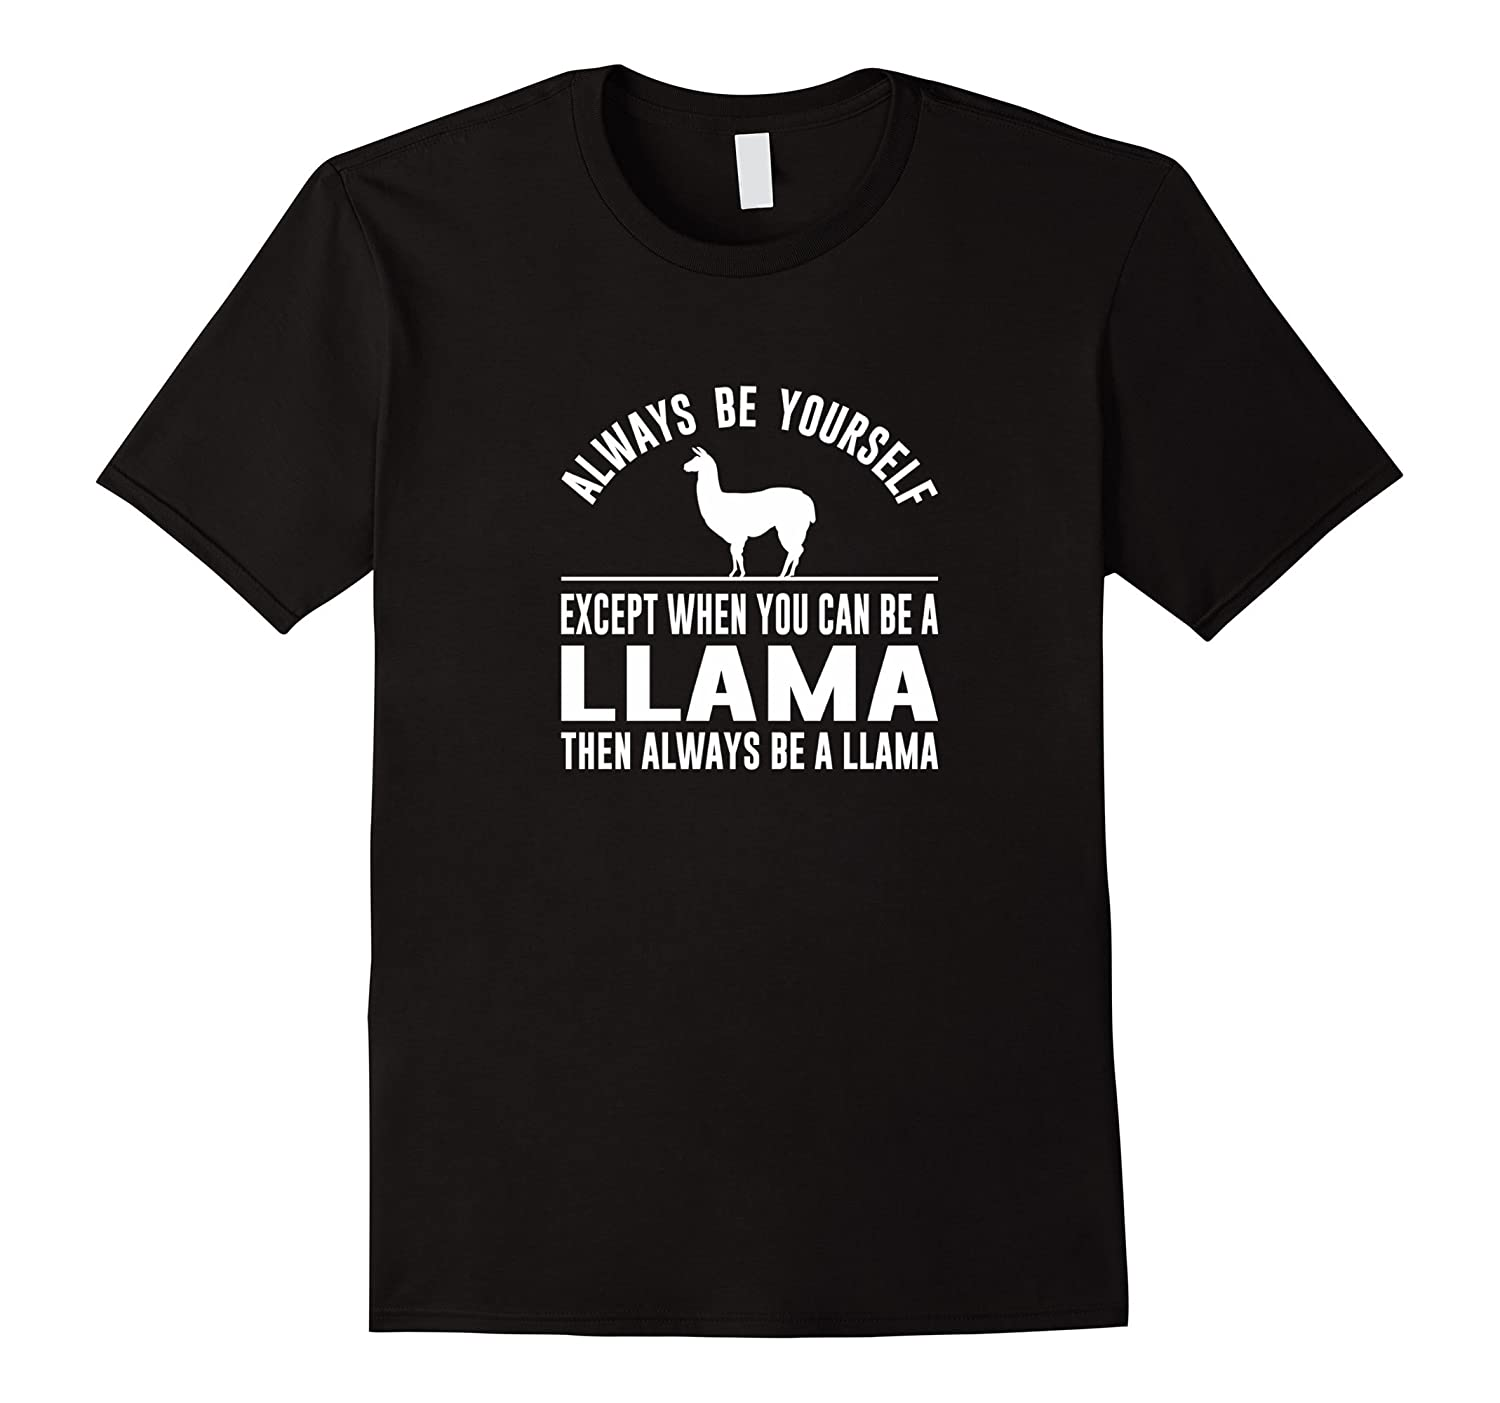 Always Be Yourself - Except When You Can Be a Llama Shirt-RT